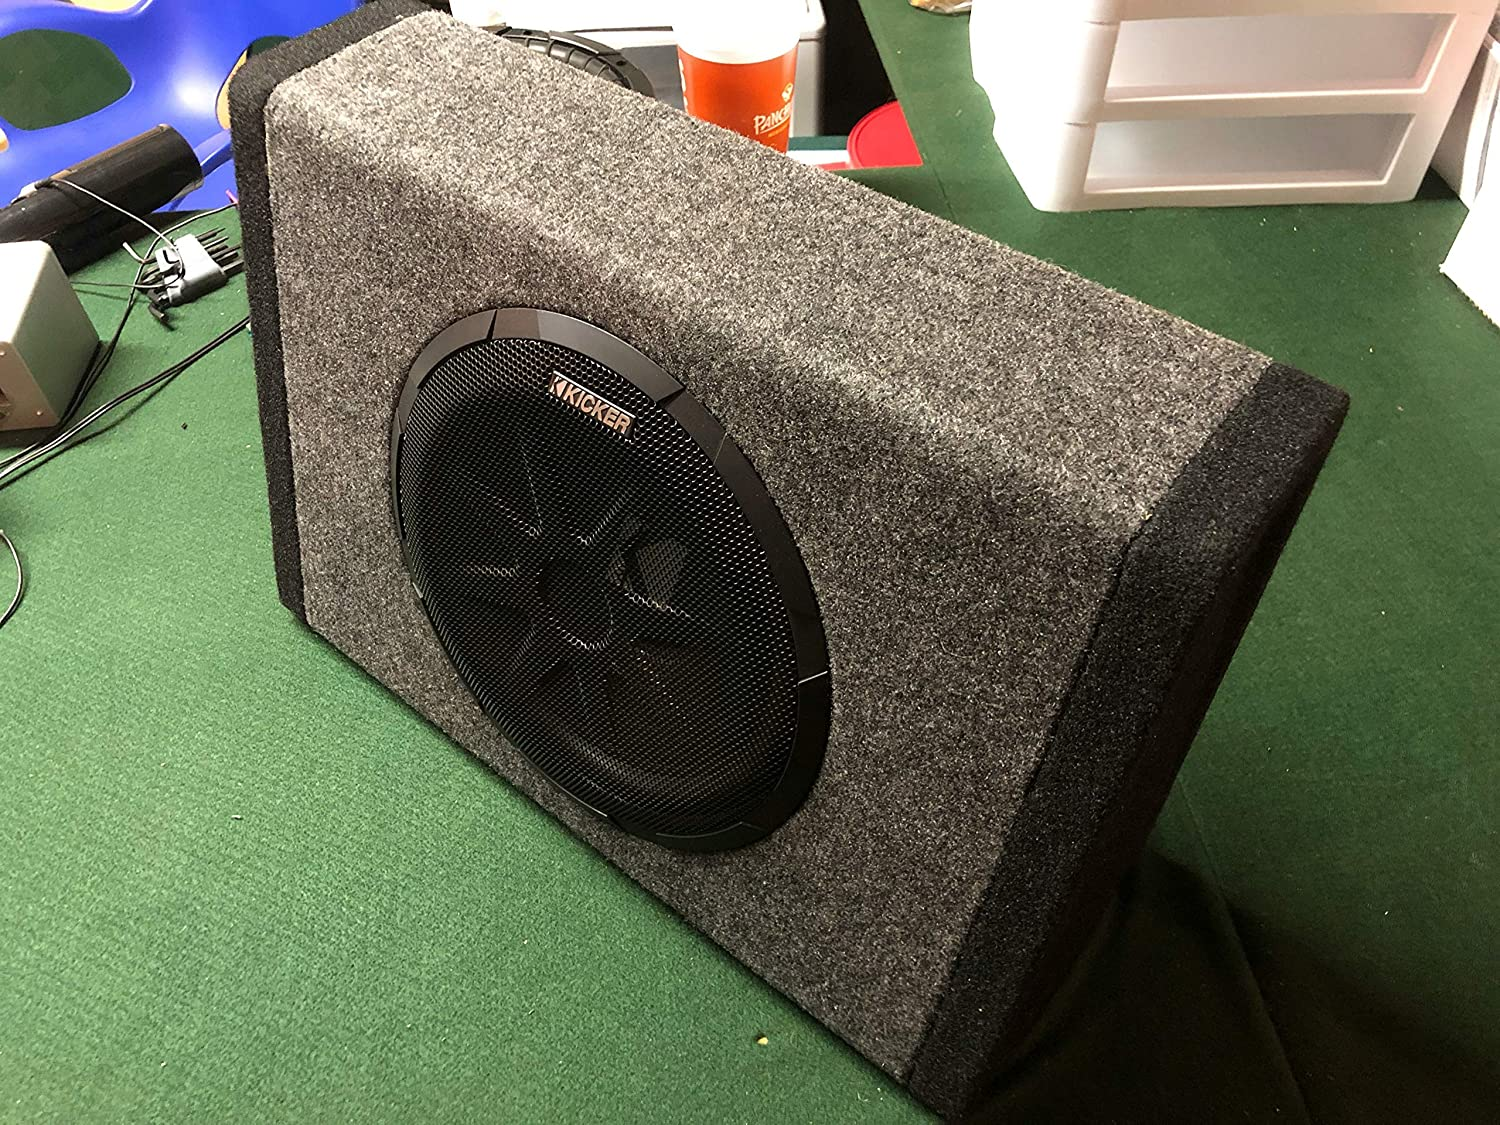 kicker pt250 10 subwoofer with built in 100w amplifier Kicker Amp